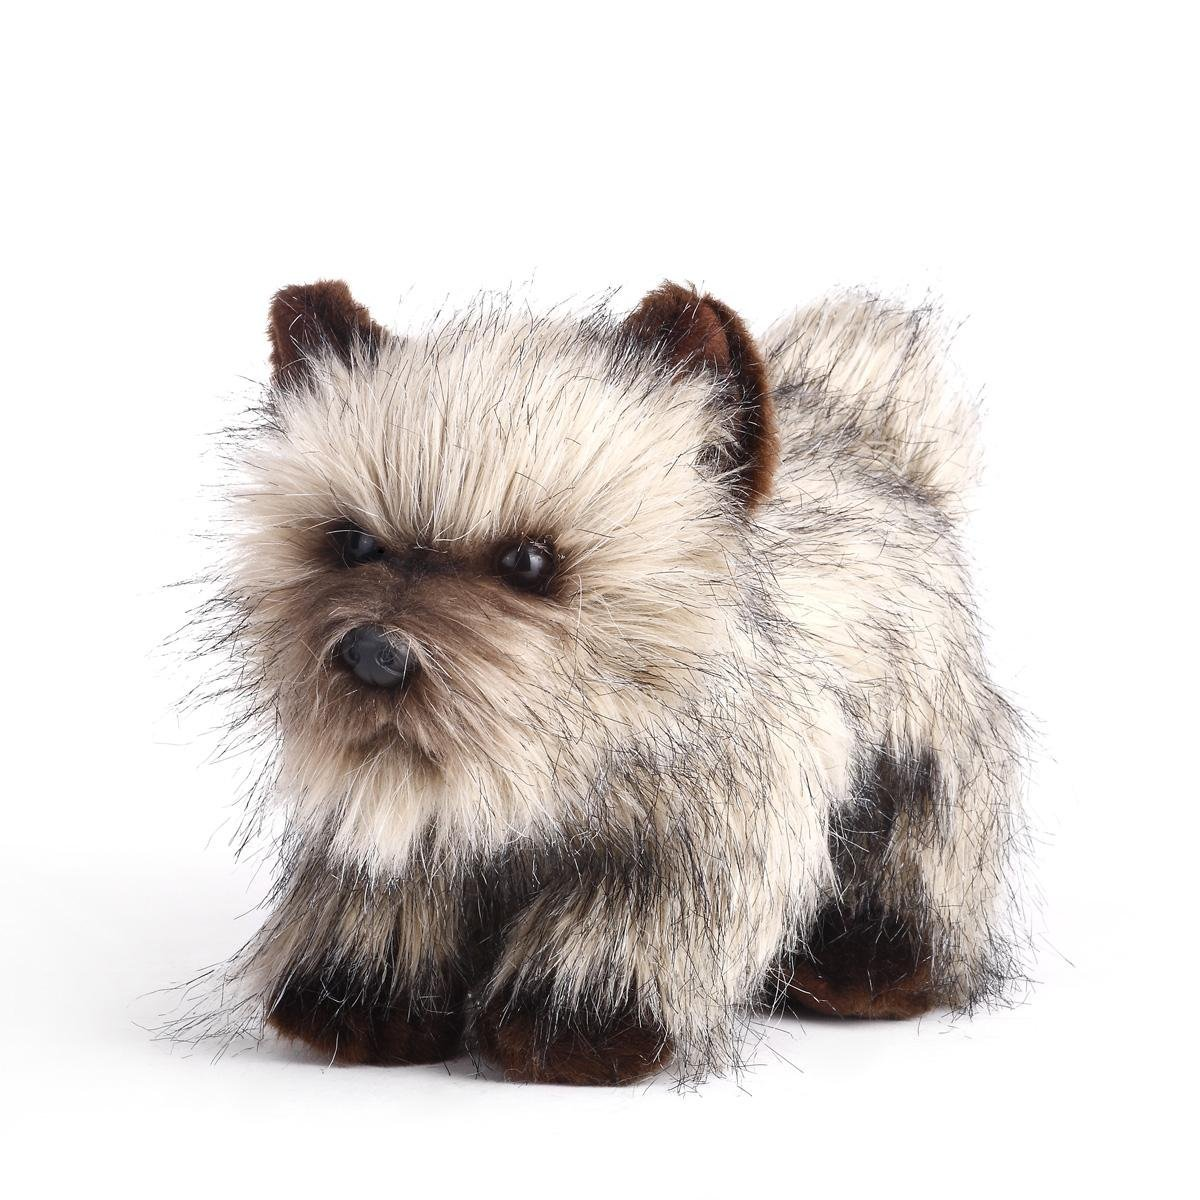 Cairn Terrier - Facts, Pictures, Puppies, Temperament